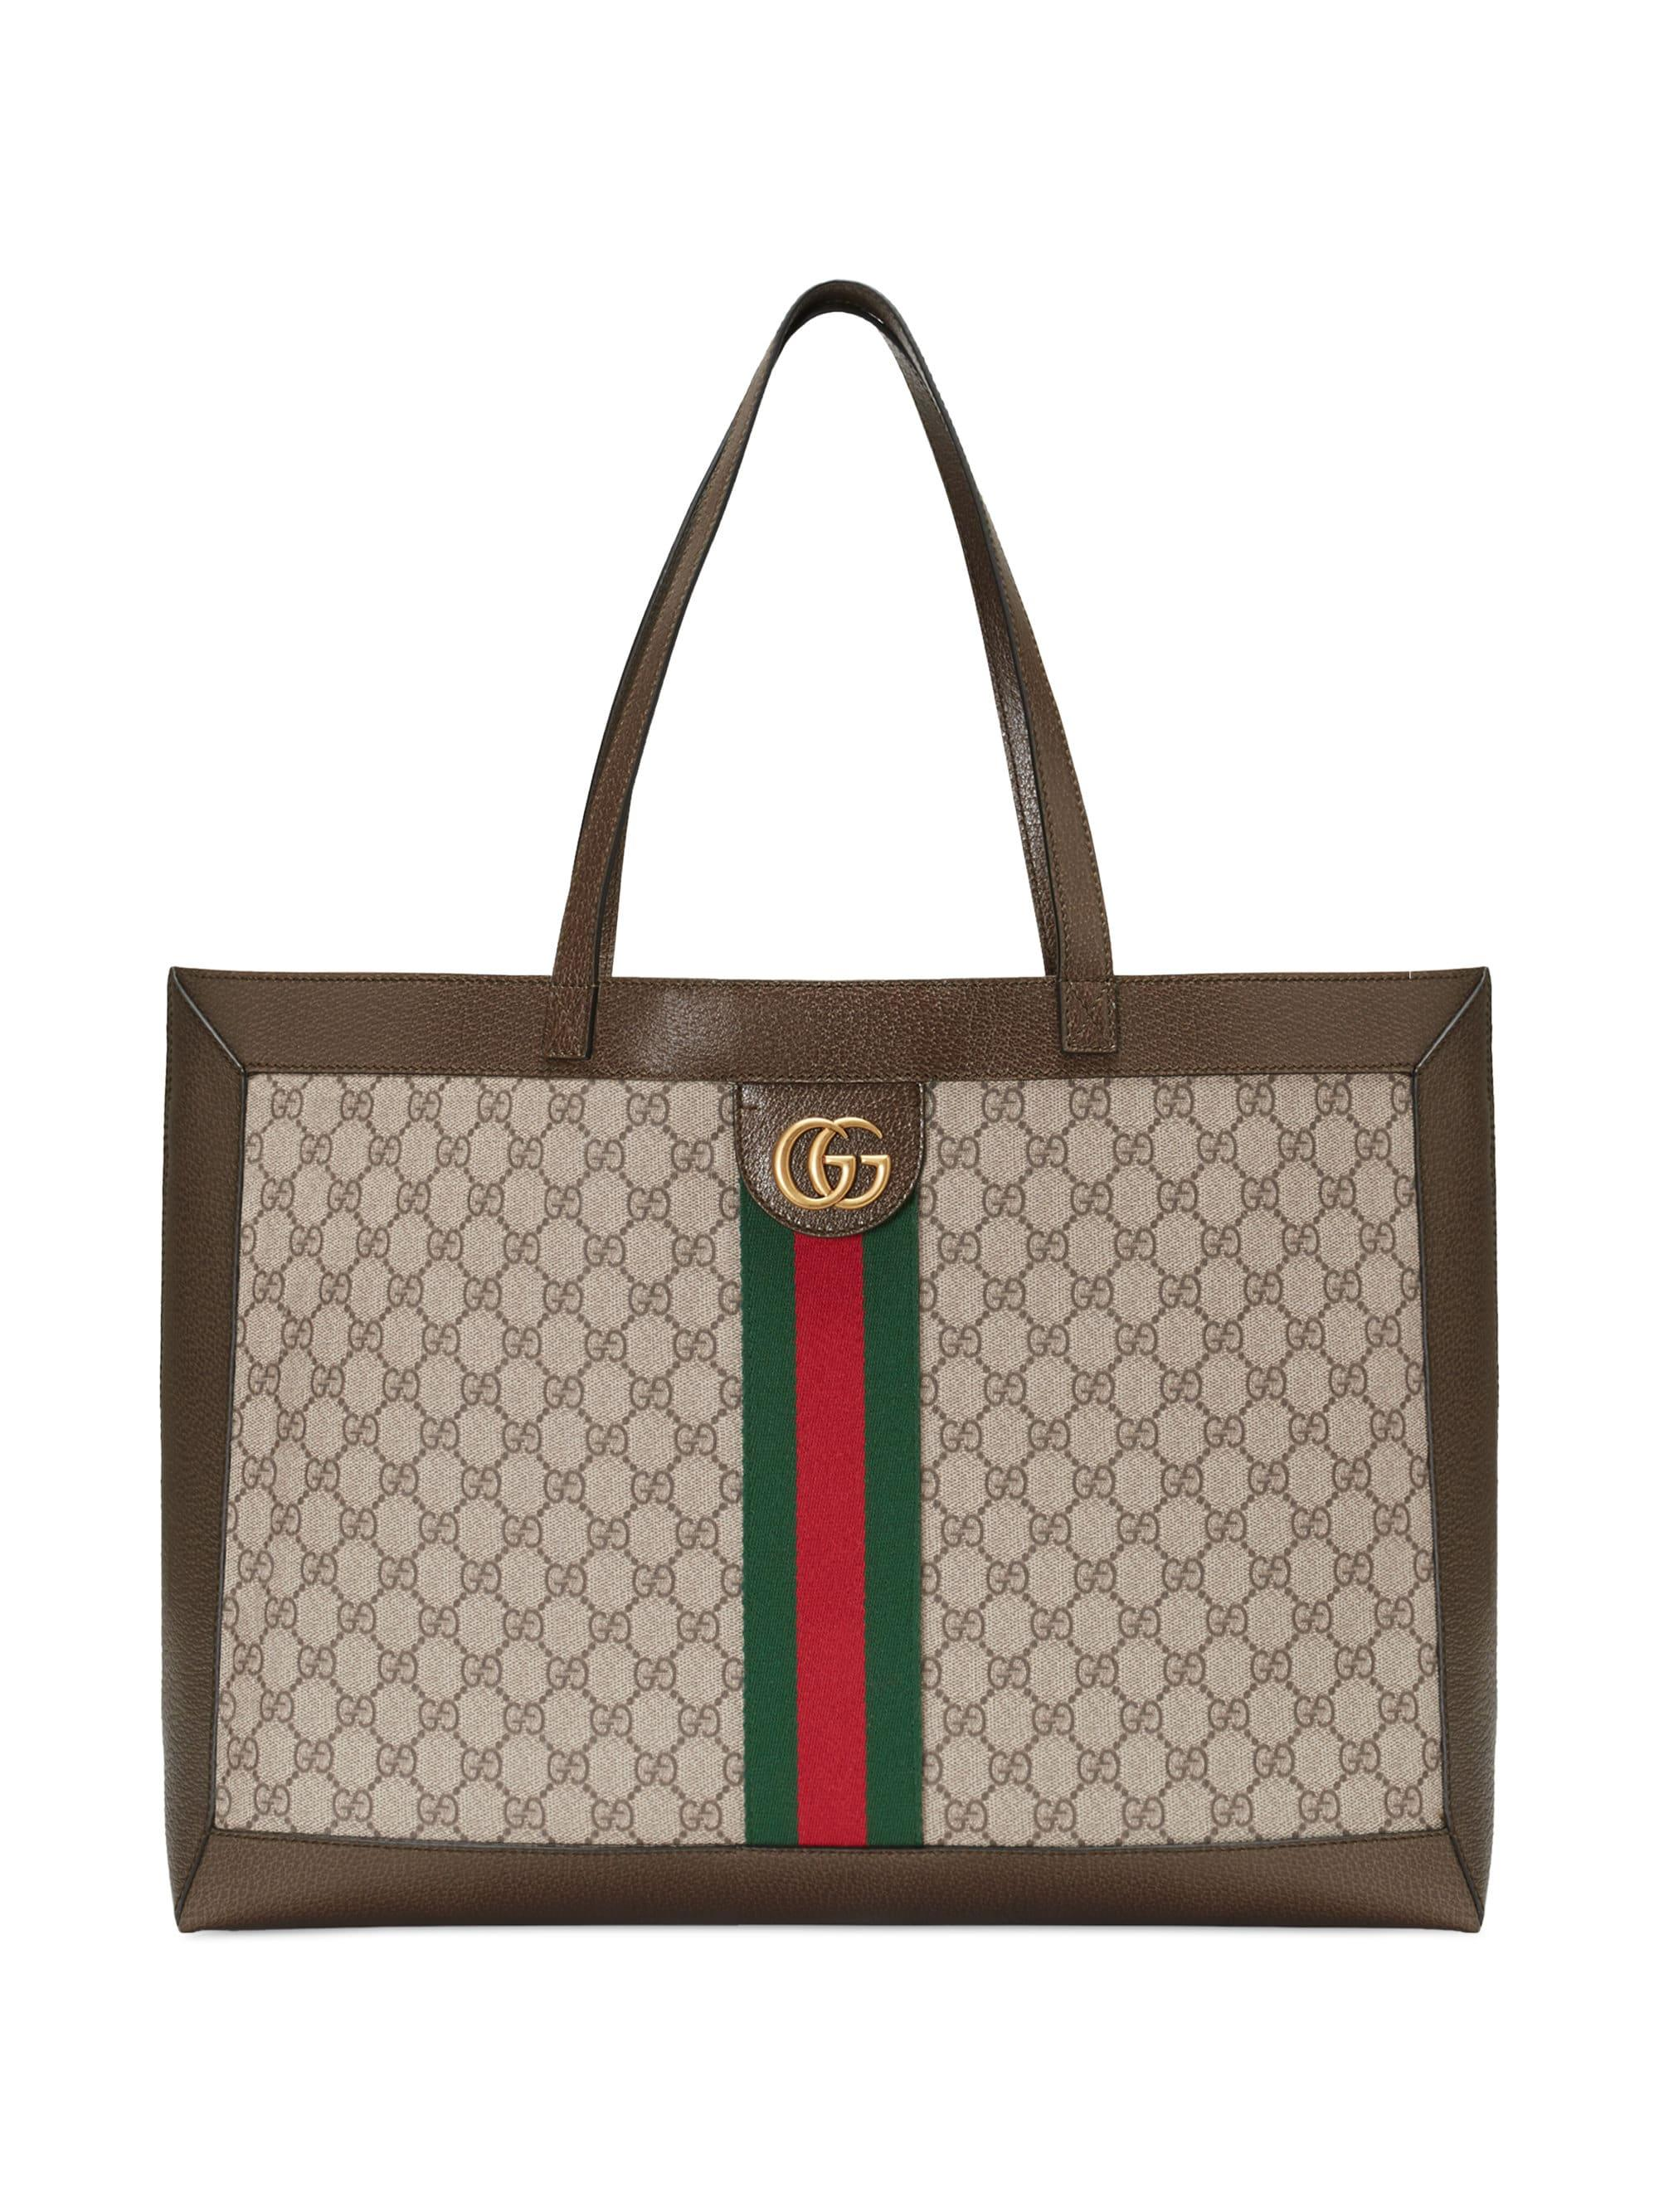 4789be4ce2382c Lyst - Gucci Women's Large Ophidia Tote - Beige Chocolate